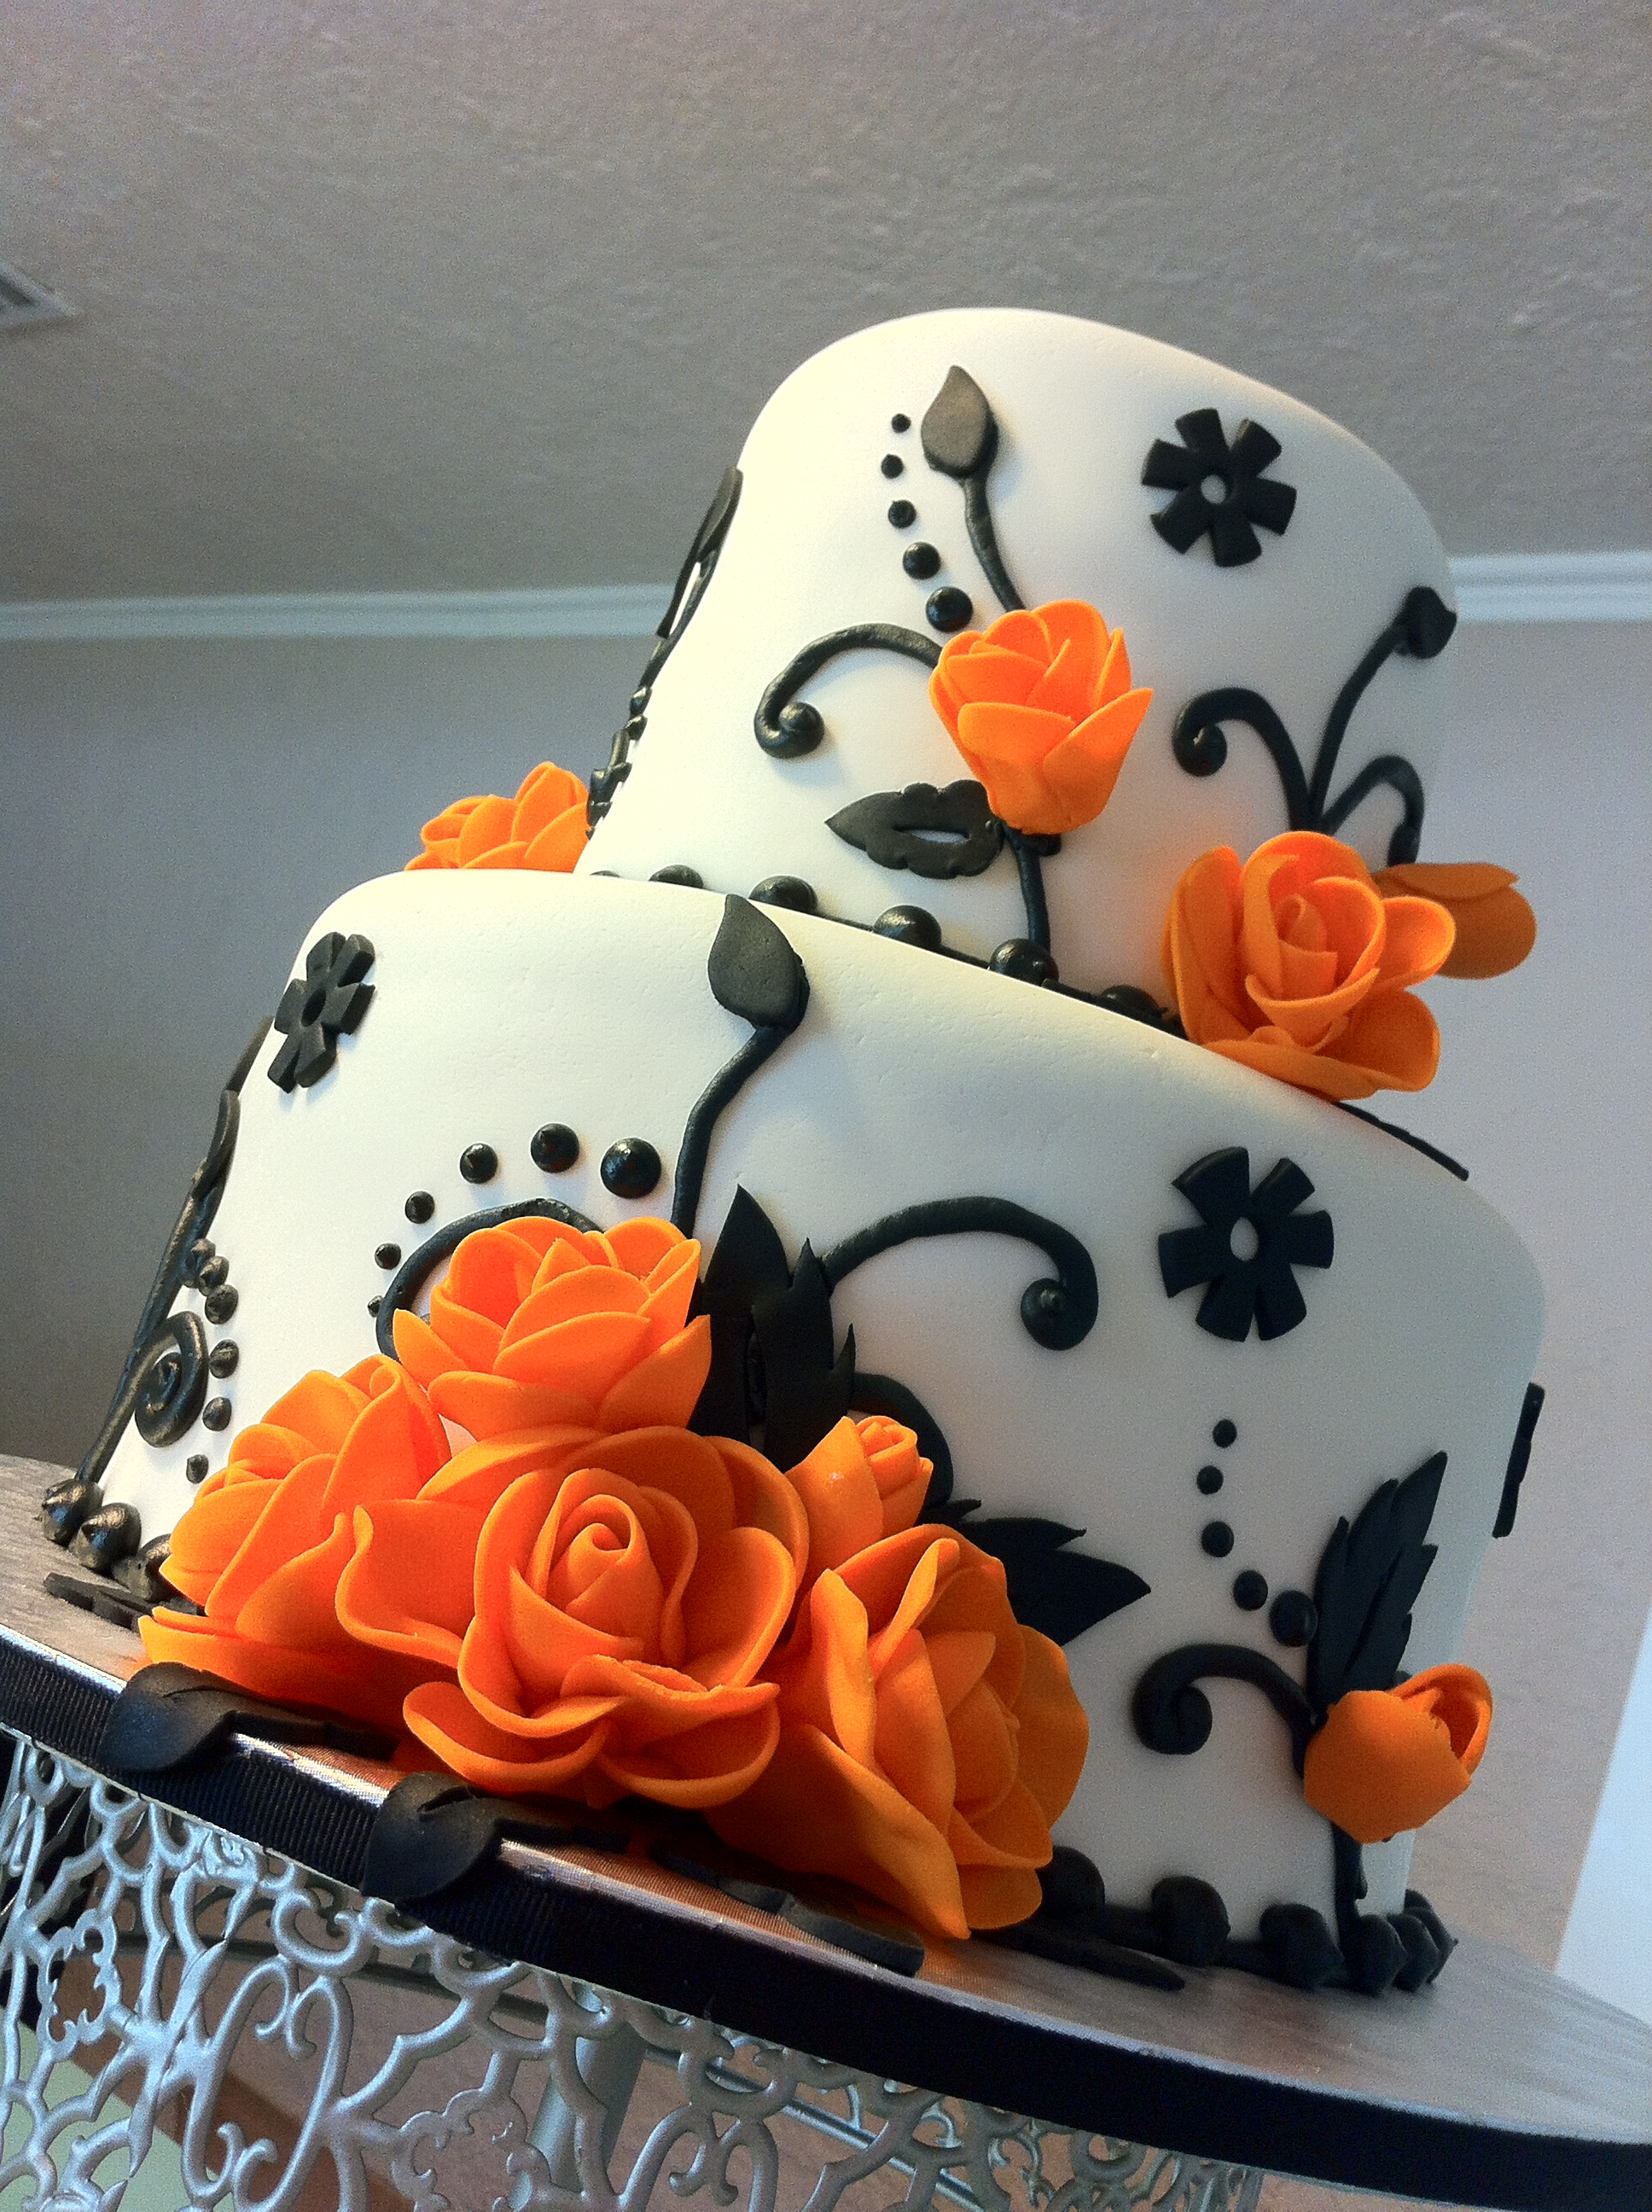 Tasha 2 Tier Wedding Cake With Black Floral Pattern And Gumpaste